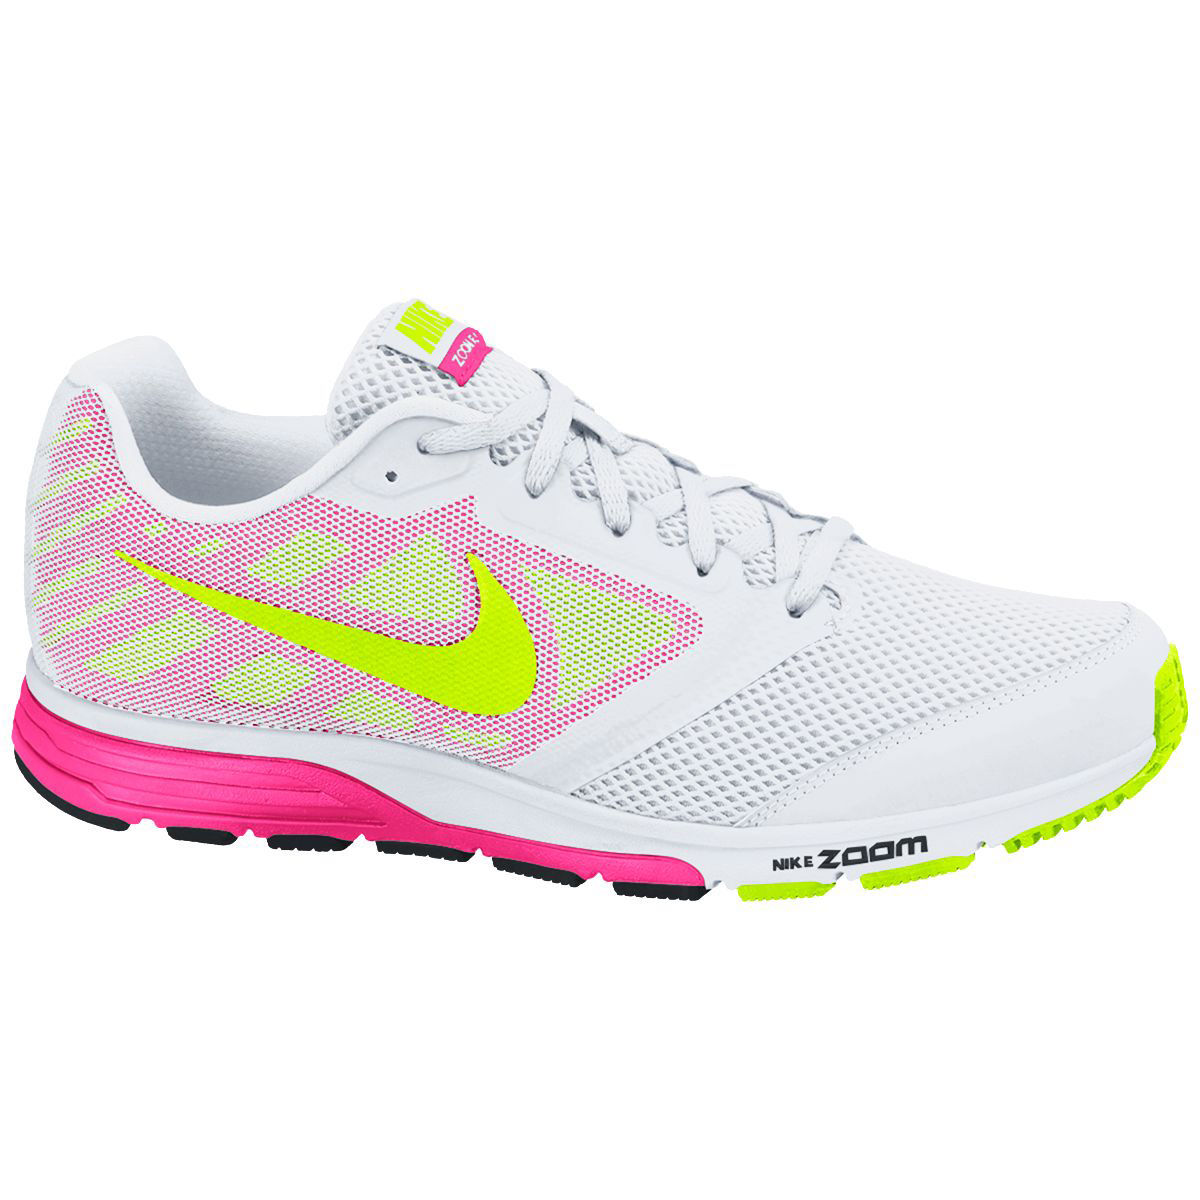 253f1a5926622 ... 707607 - Nike Womens Zoom Fly Shoes - FA14 New Running Shoes Neutral  Grey Volt Bright Cerise Pink Nike WMNS Air Zoom Fly 2 ...